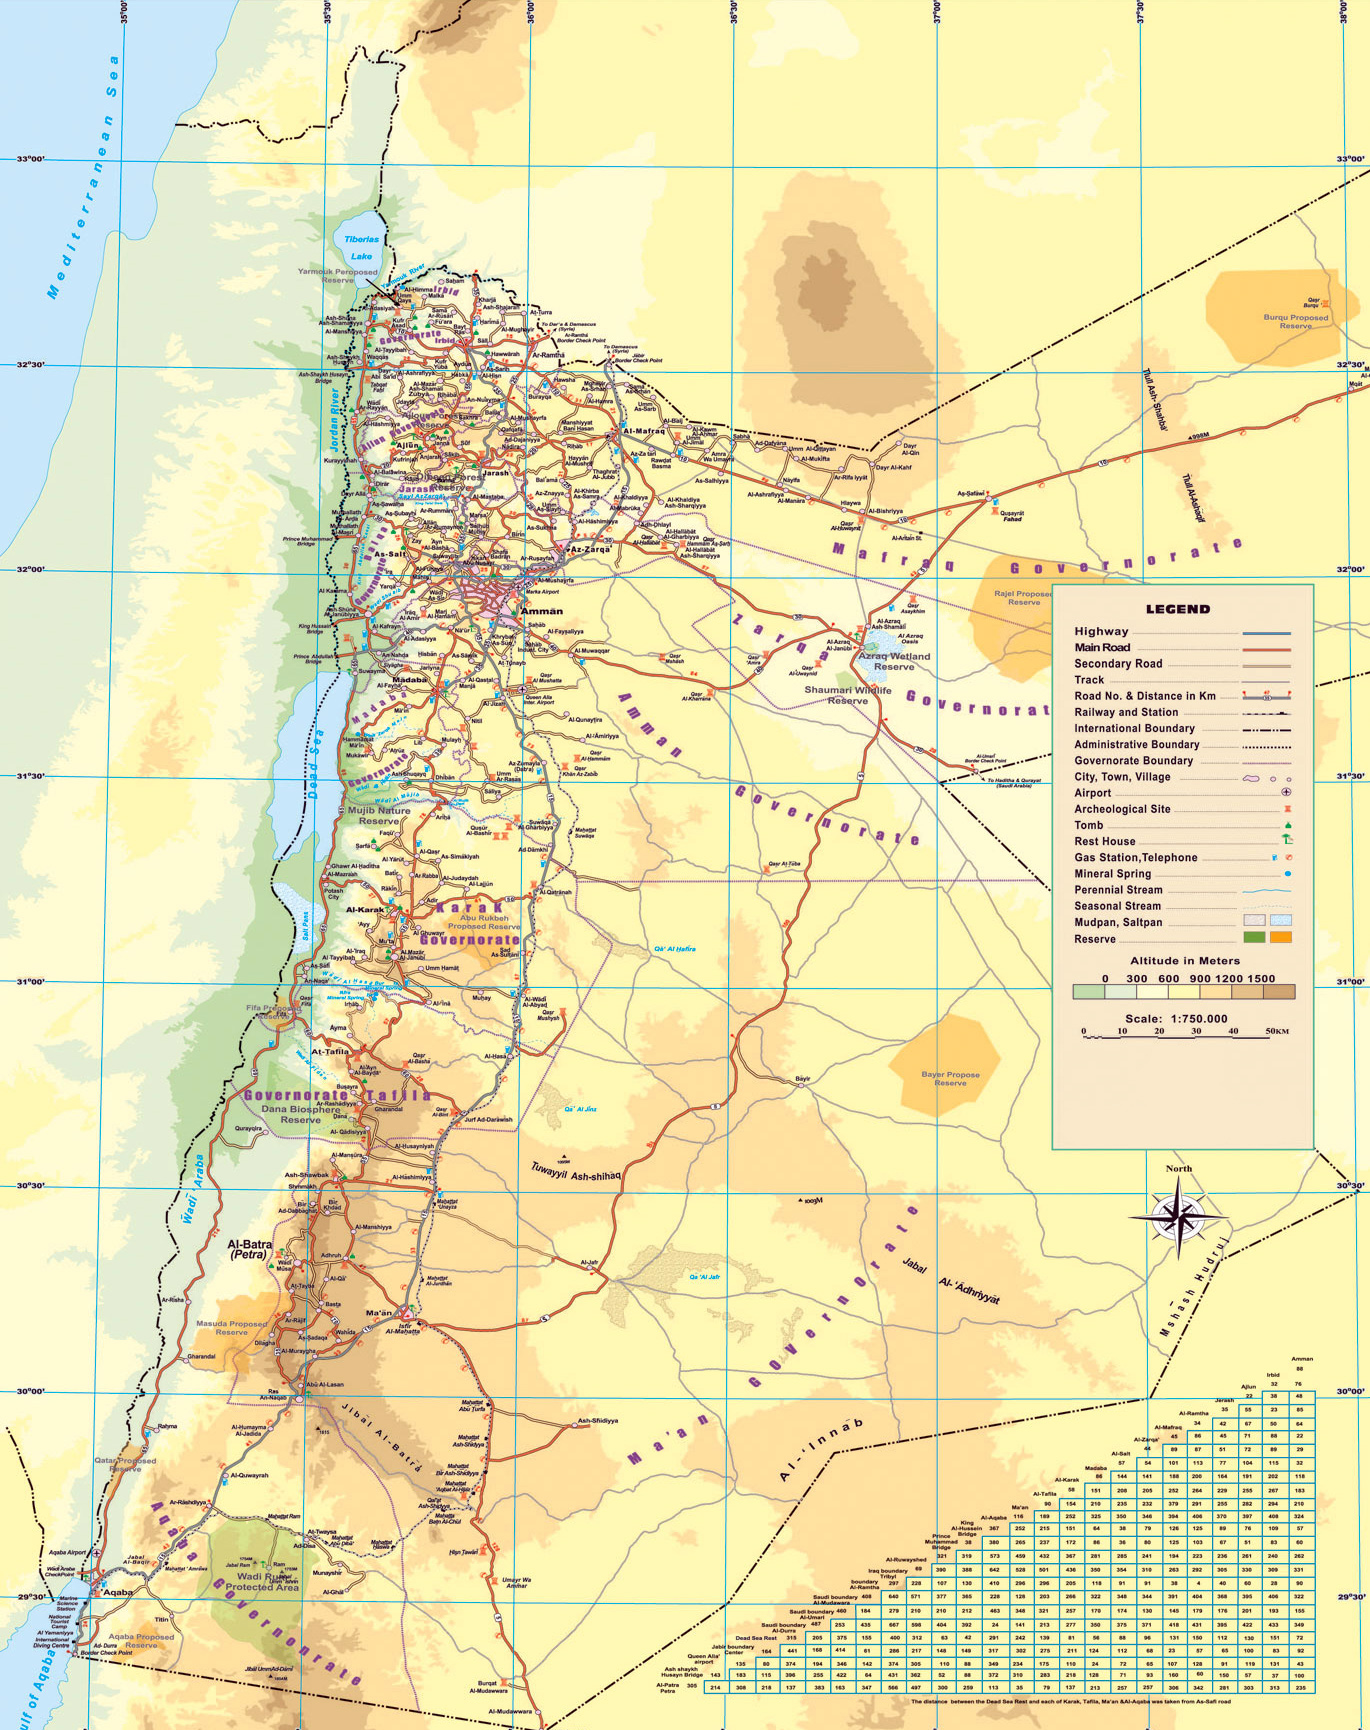 Maps of jordan detailed map of jordan in english tourist map of detailed elevation map of jordan with roads cities airports and other marks gumiabroncs Images